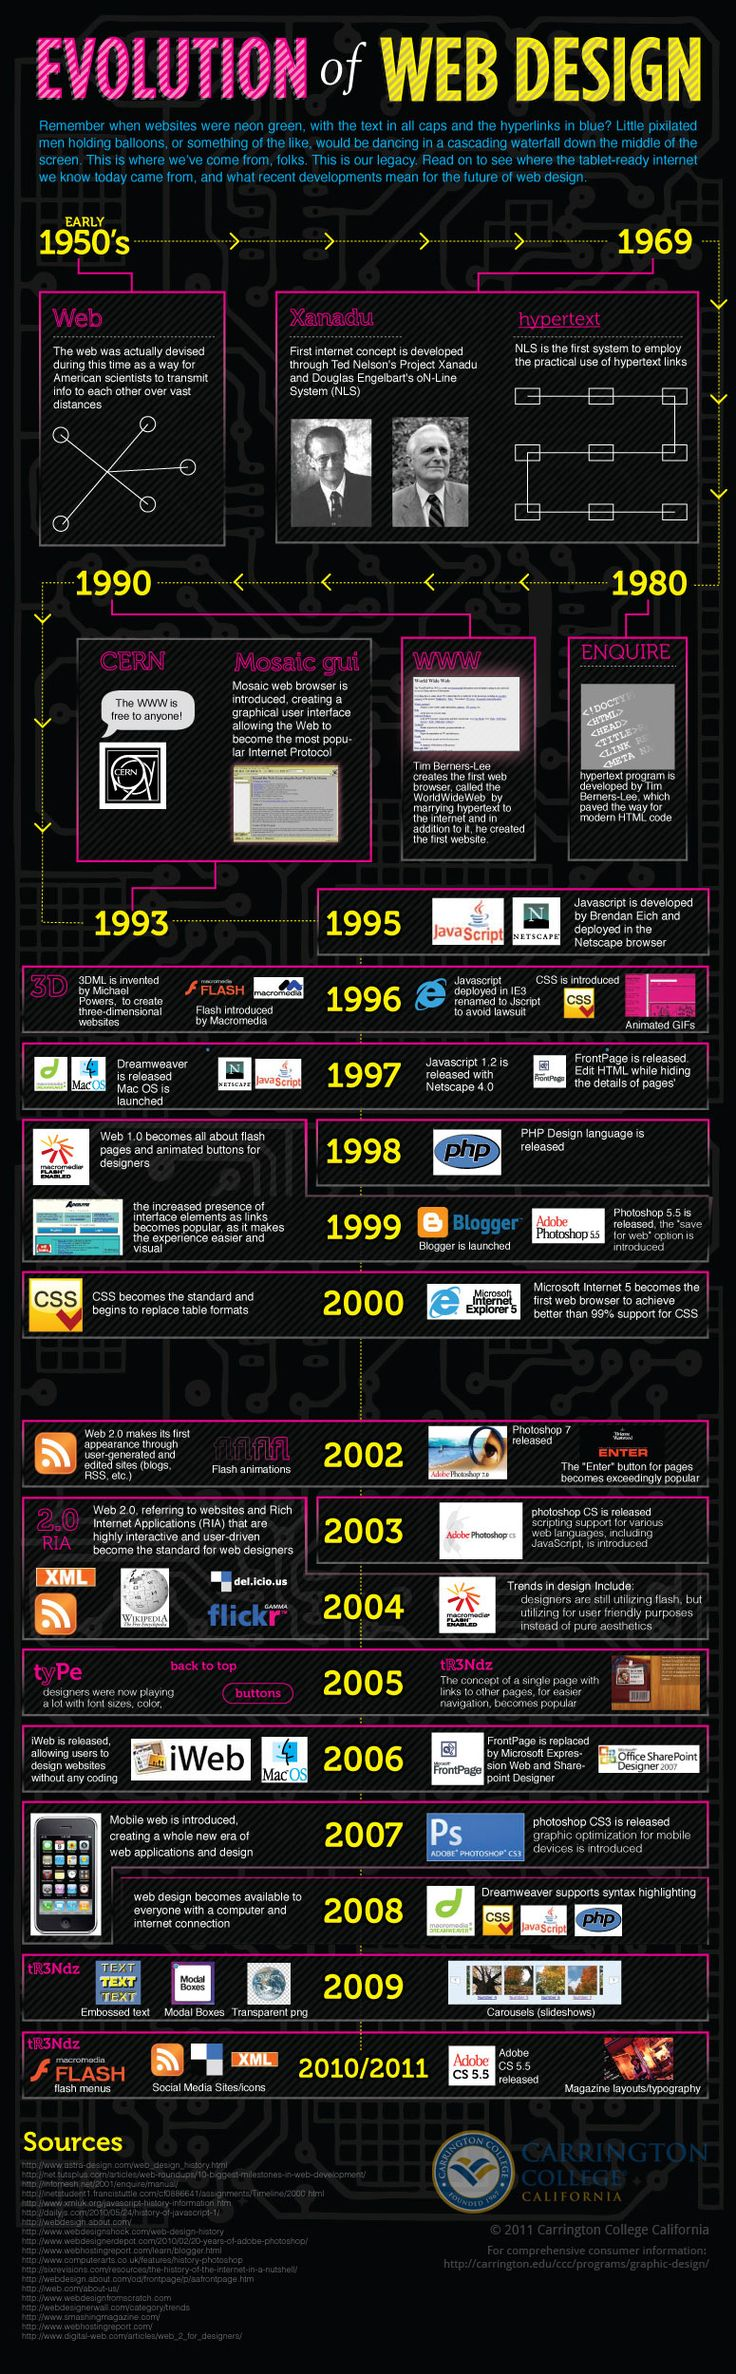 A great infographic that takes us through the design evolution of the web. A great reminder of just how far we have come with online design.